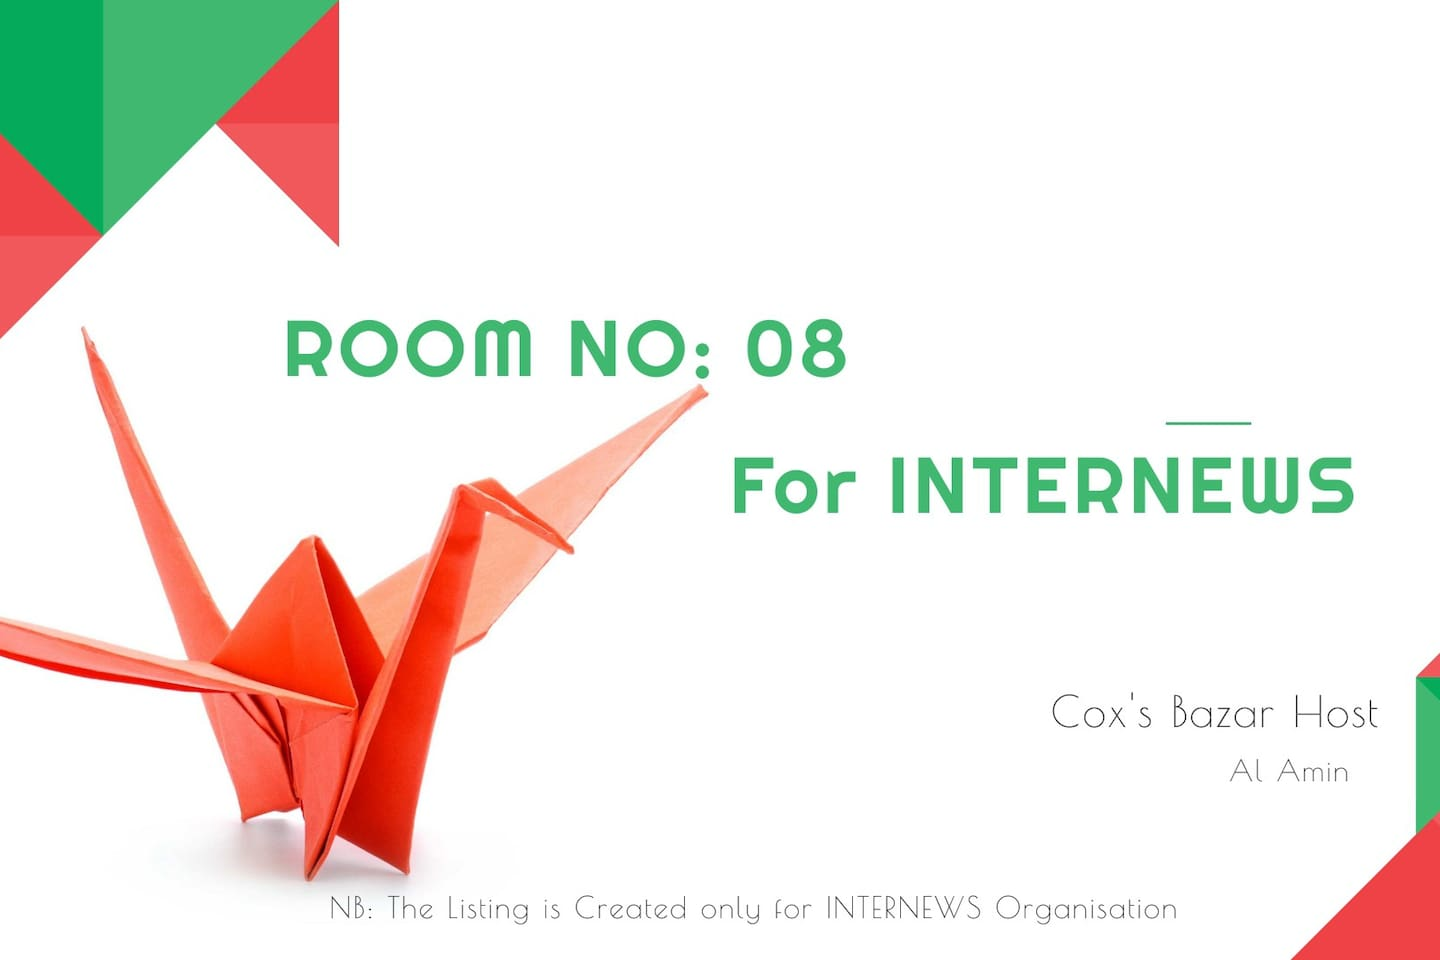 The listing is created only for Internews Organisation.